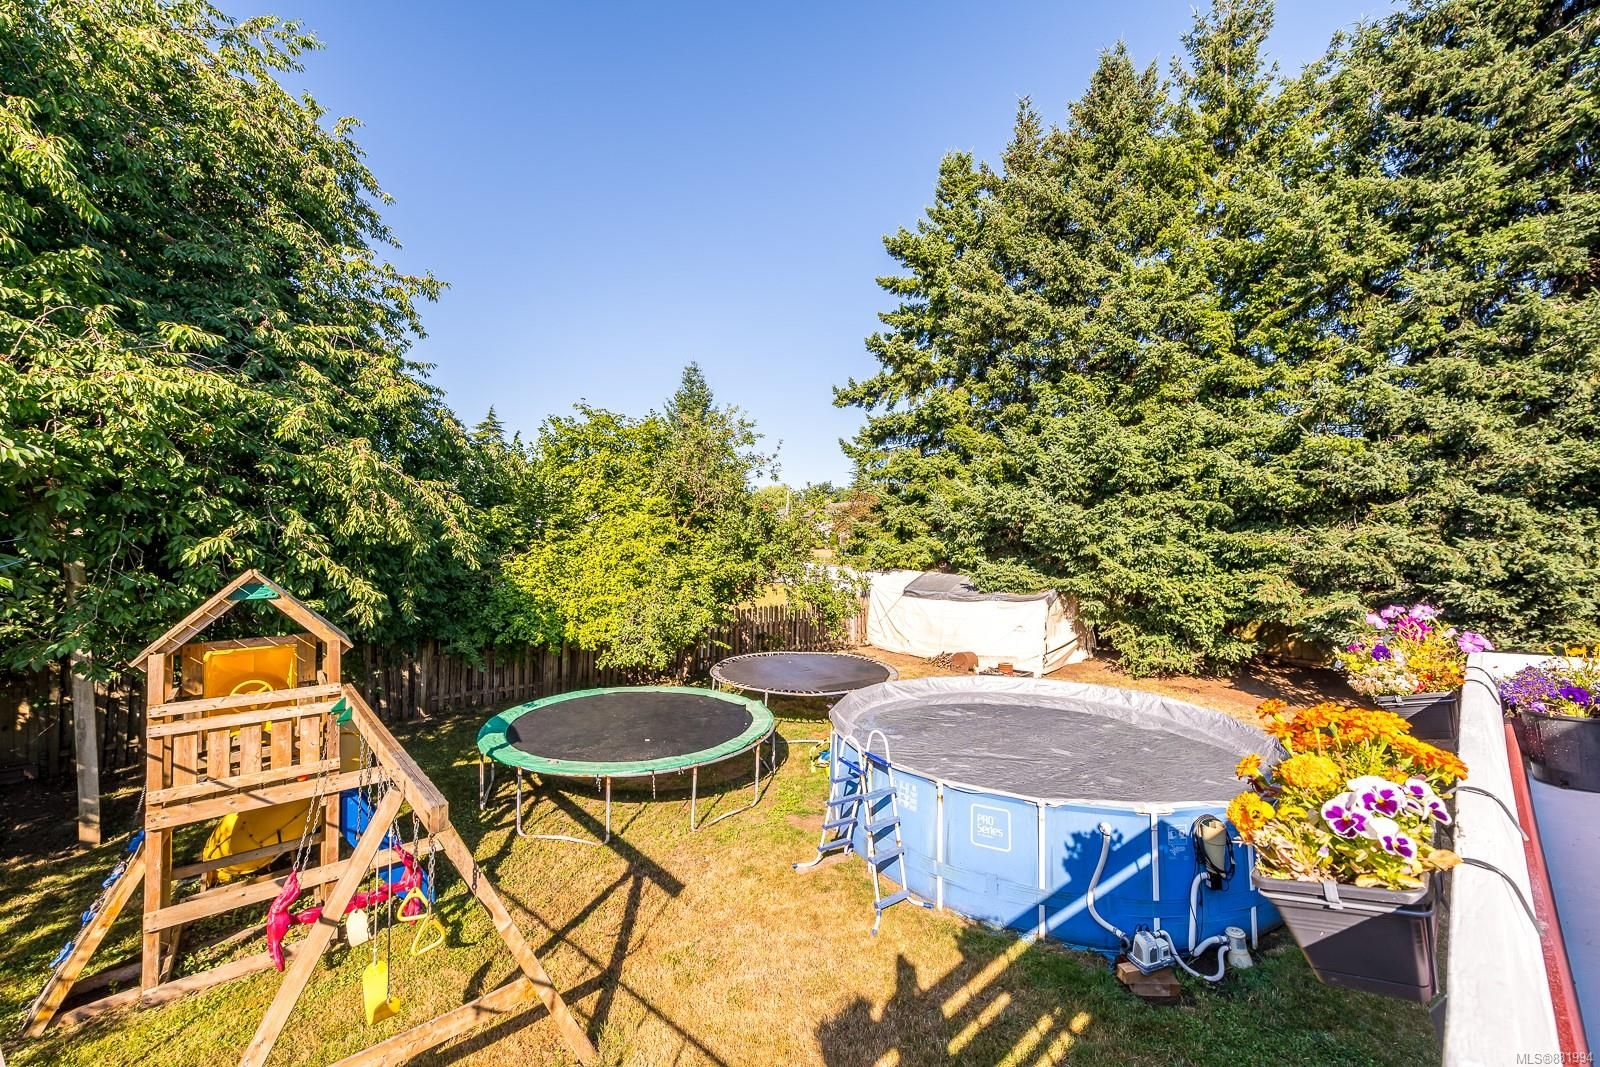 Photo 19: Photos: 1935 Fitzgerald Ave in : CV Courtenay City House for sale (Comox Valley)  : MLS®# 881994